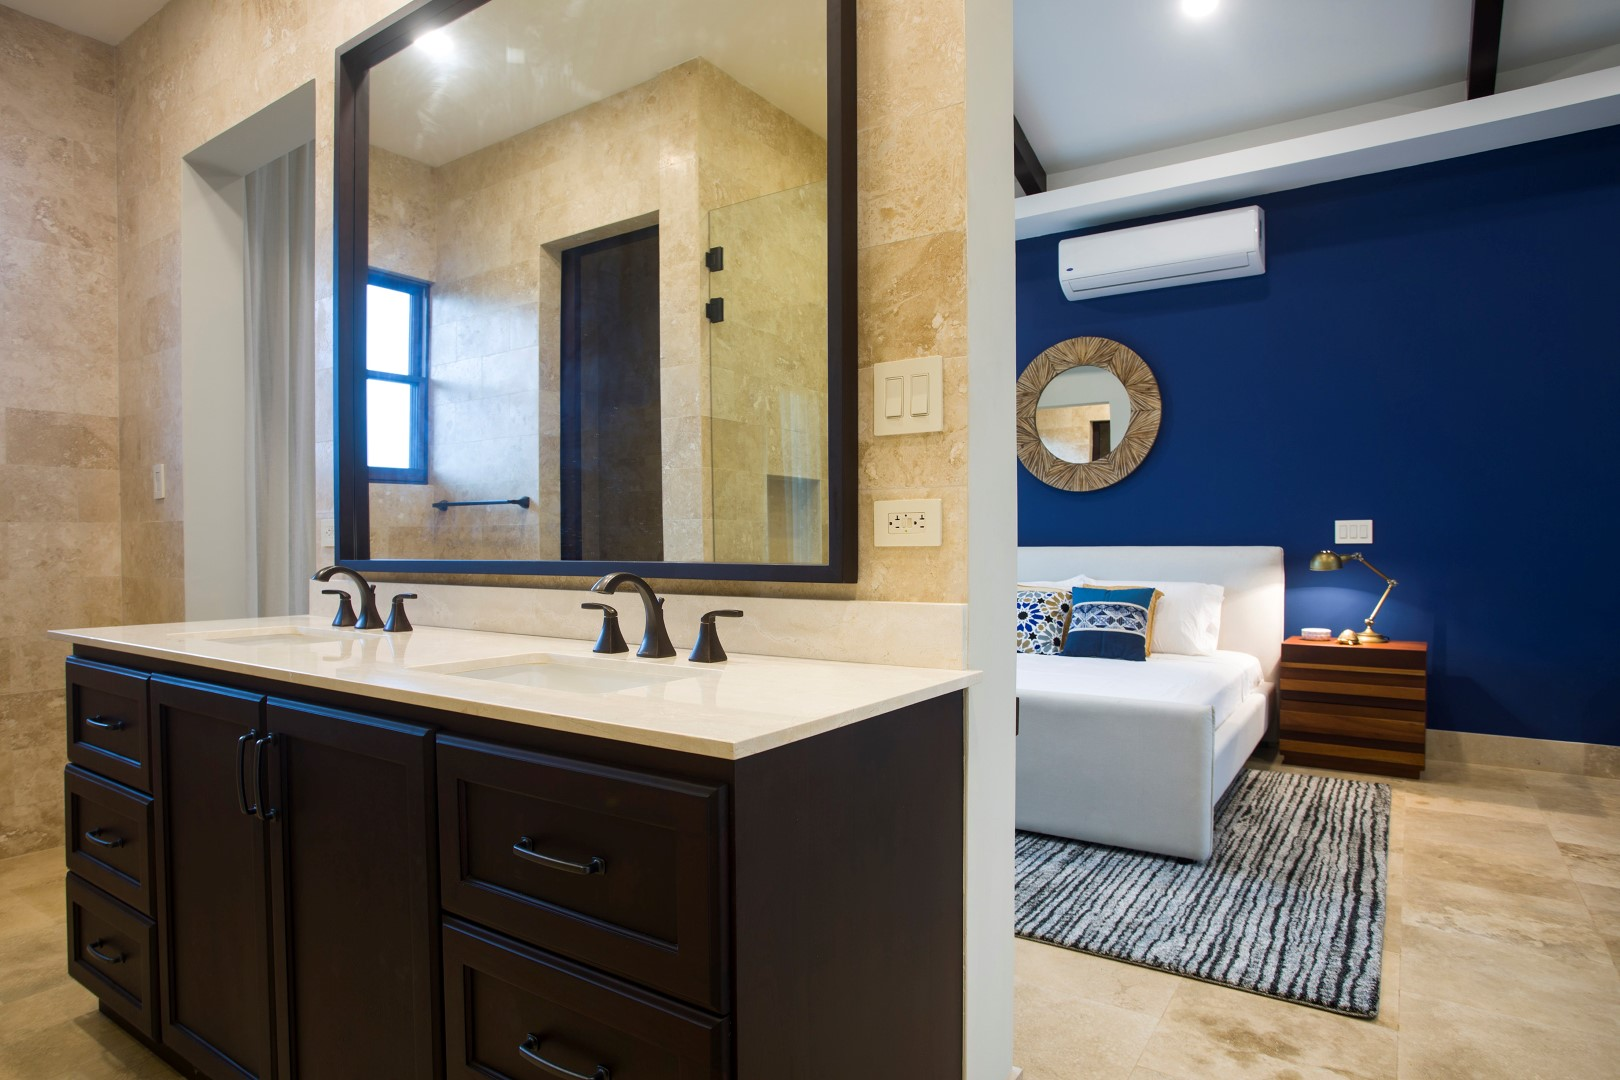 Spacious bath with double sinks